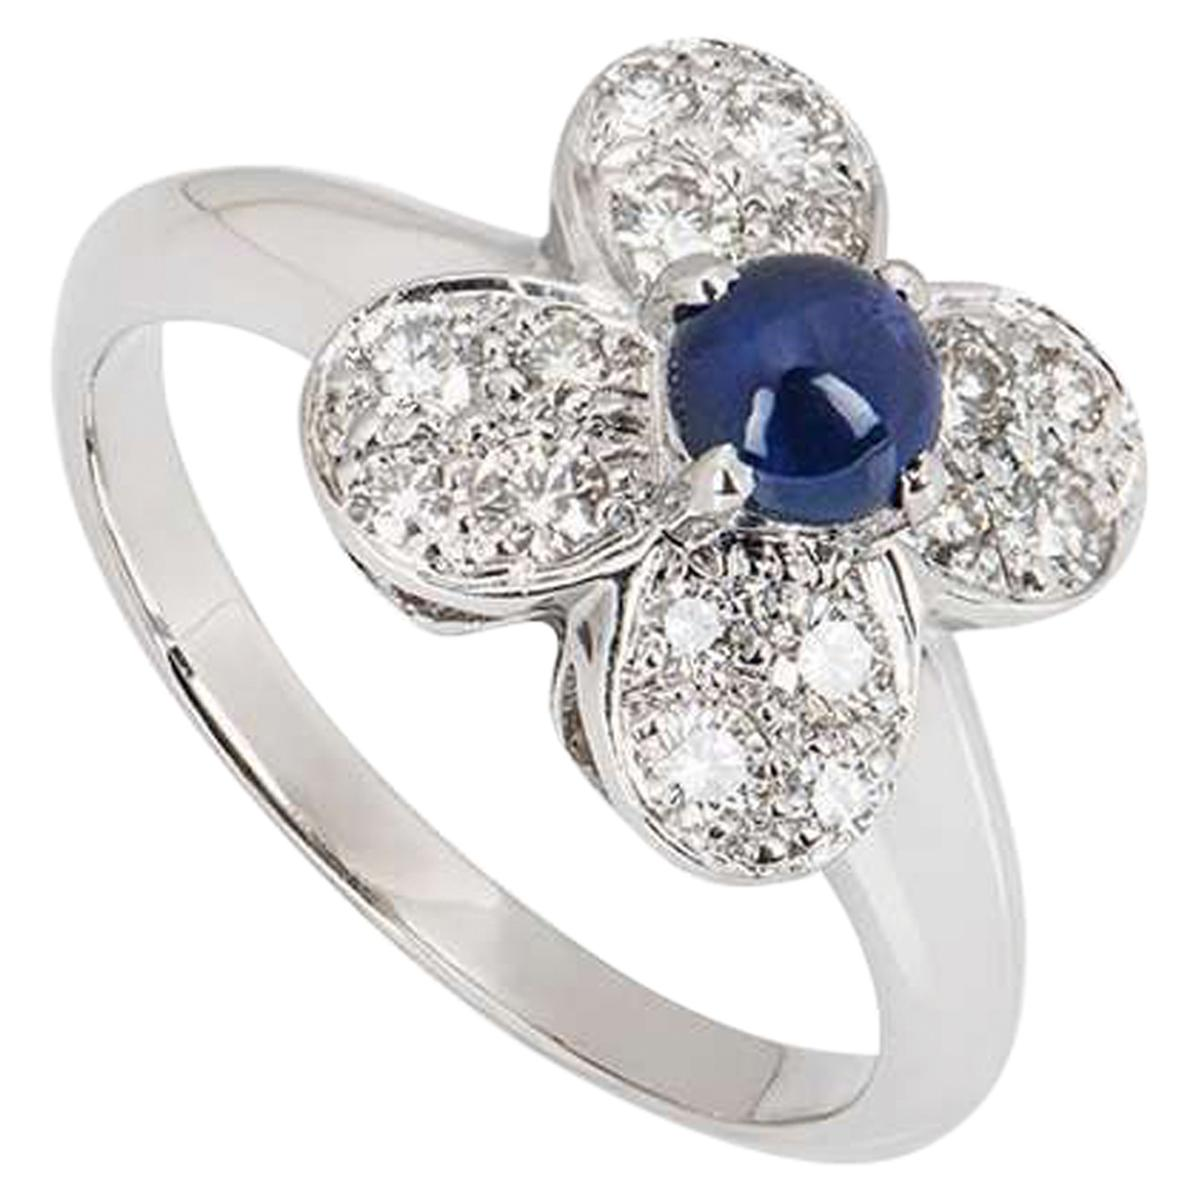 Van Cleef & Arpels Sapphire and Diamond Alhambra Ring